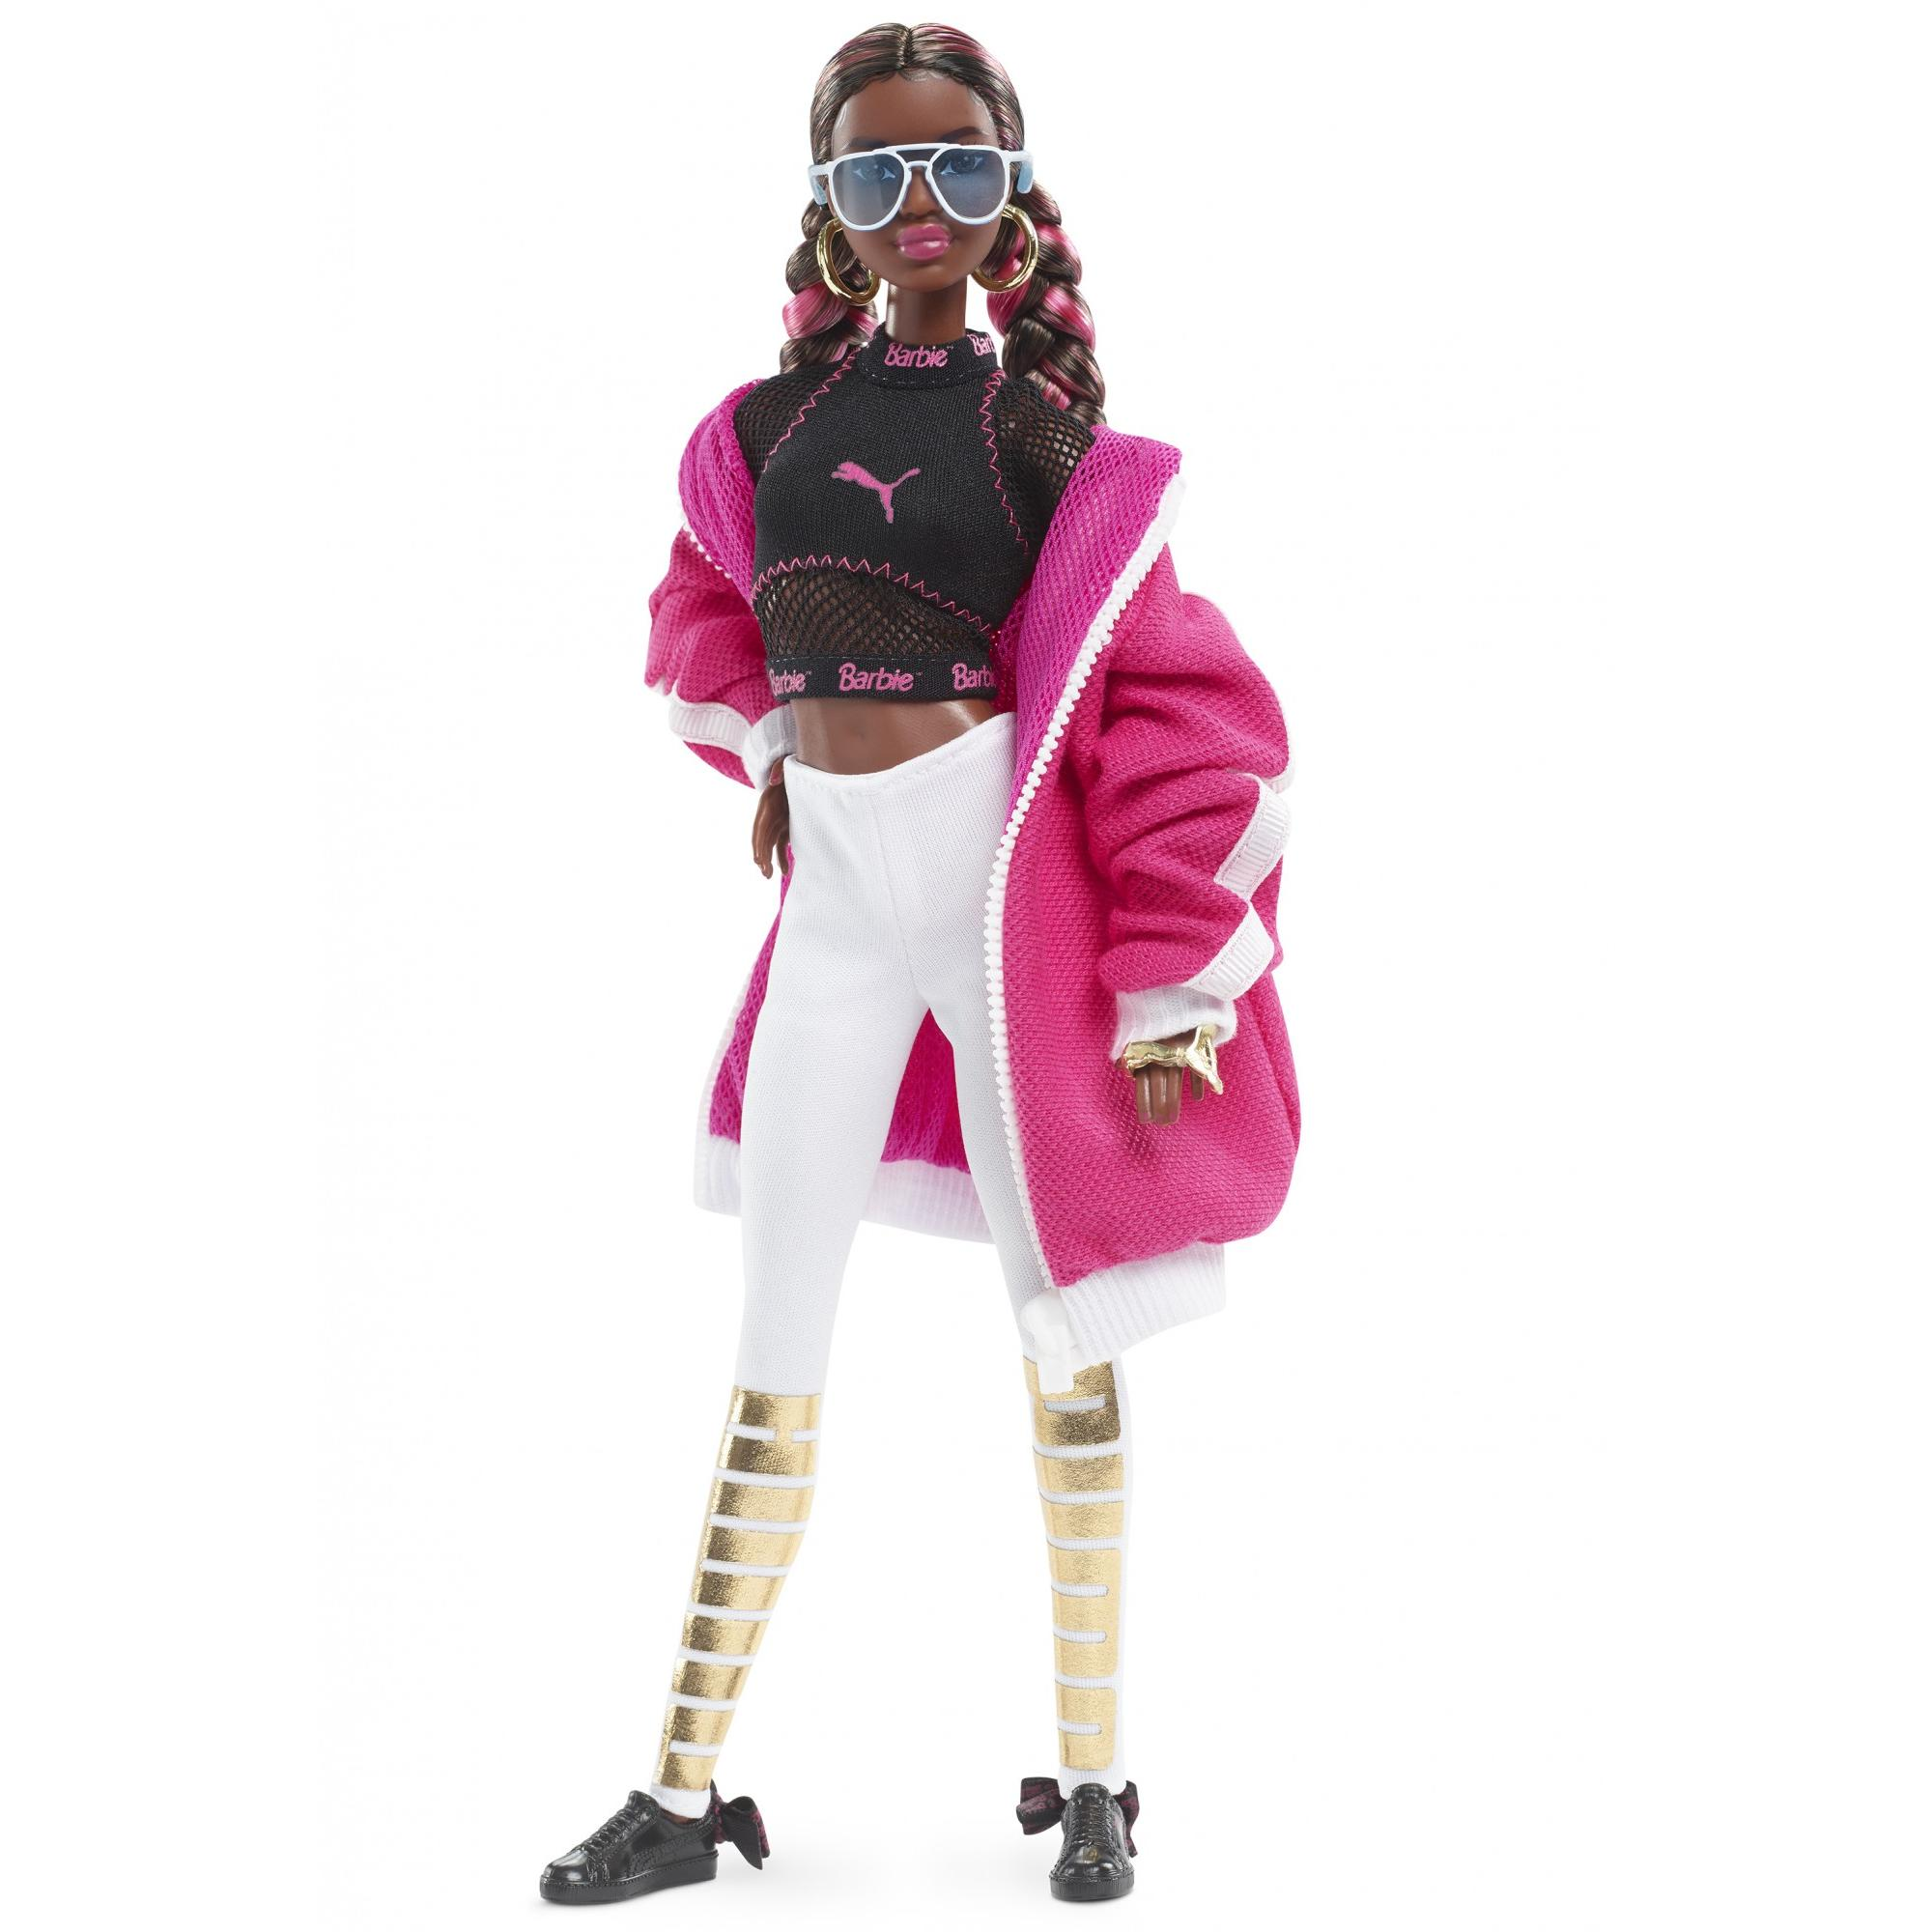 Barbie Puma 50th Anniversary Sporty Fashion Doll, Pink Jacket